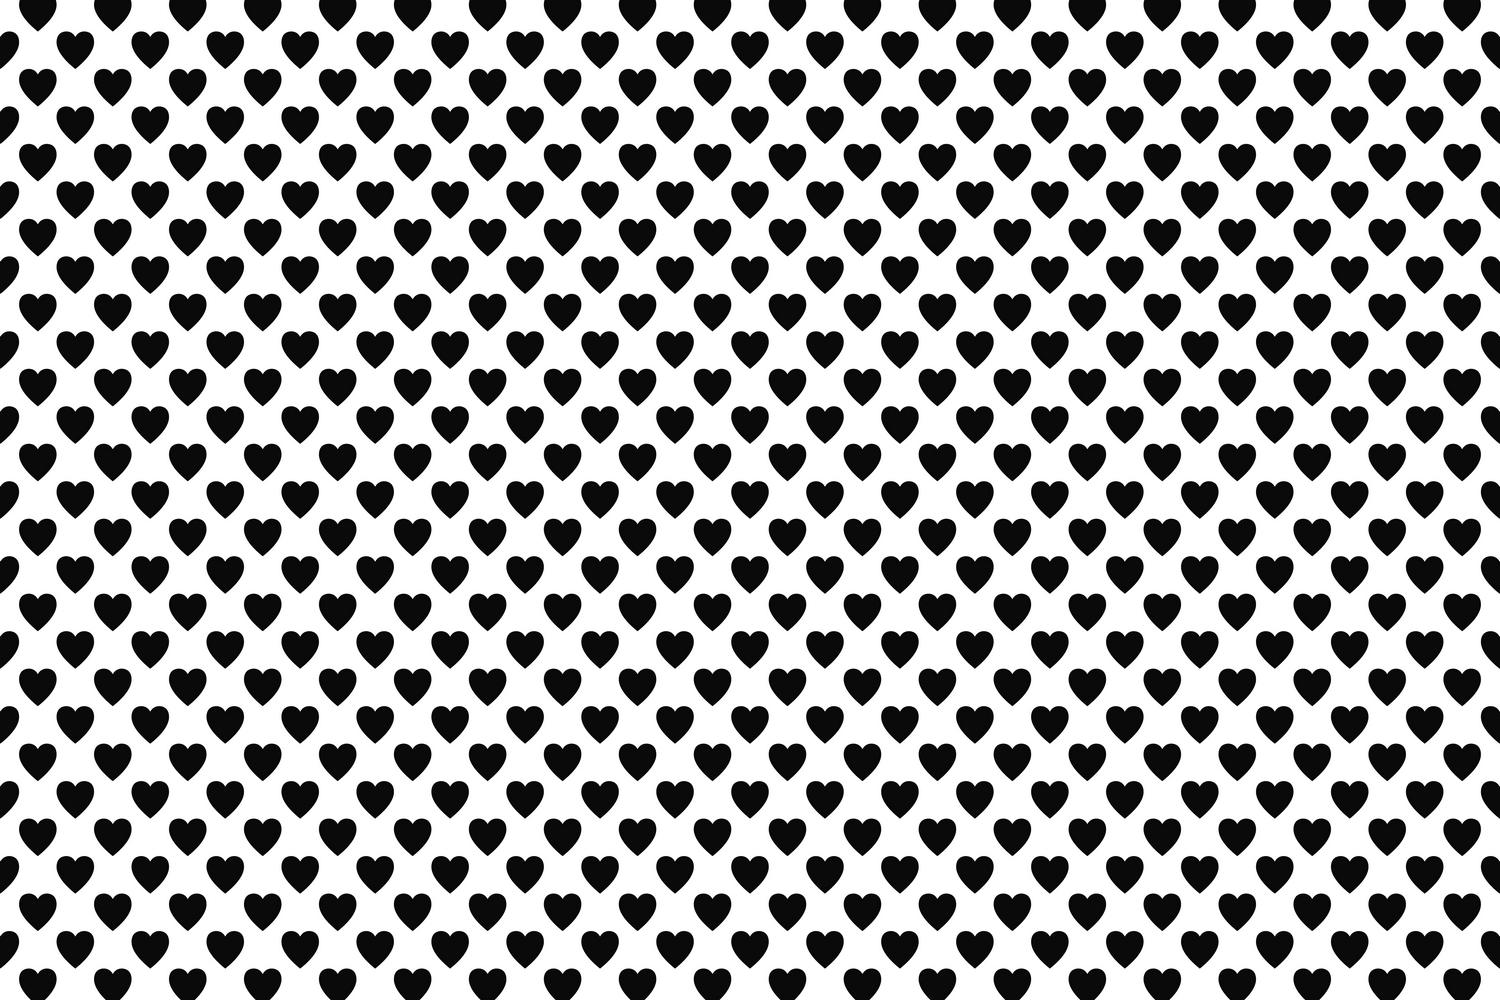 clipart transparent stock  heart patterns eps. Pattern svg